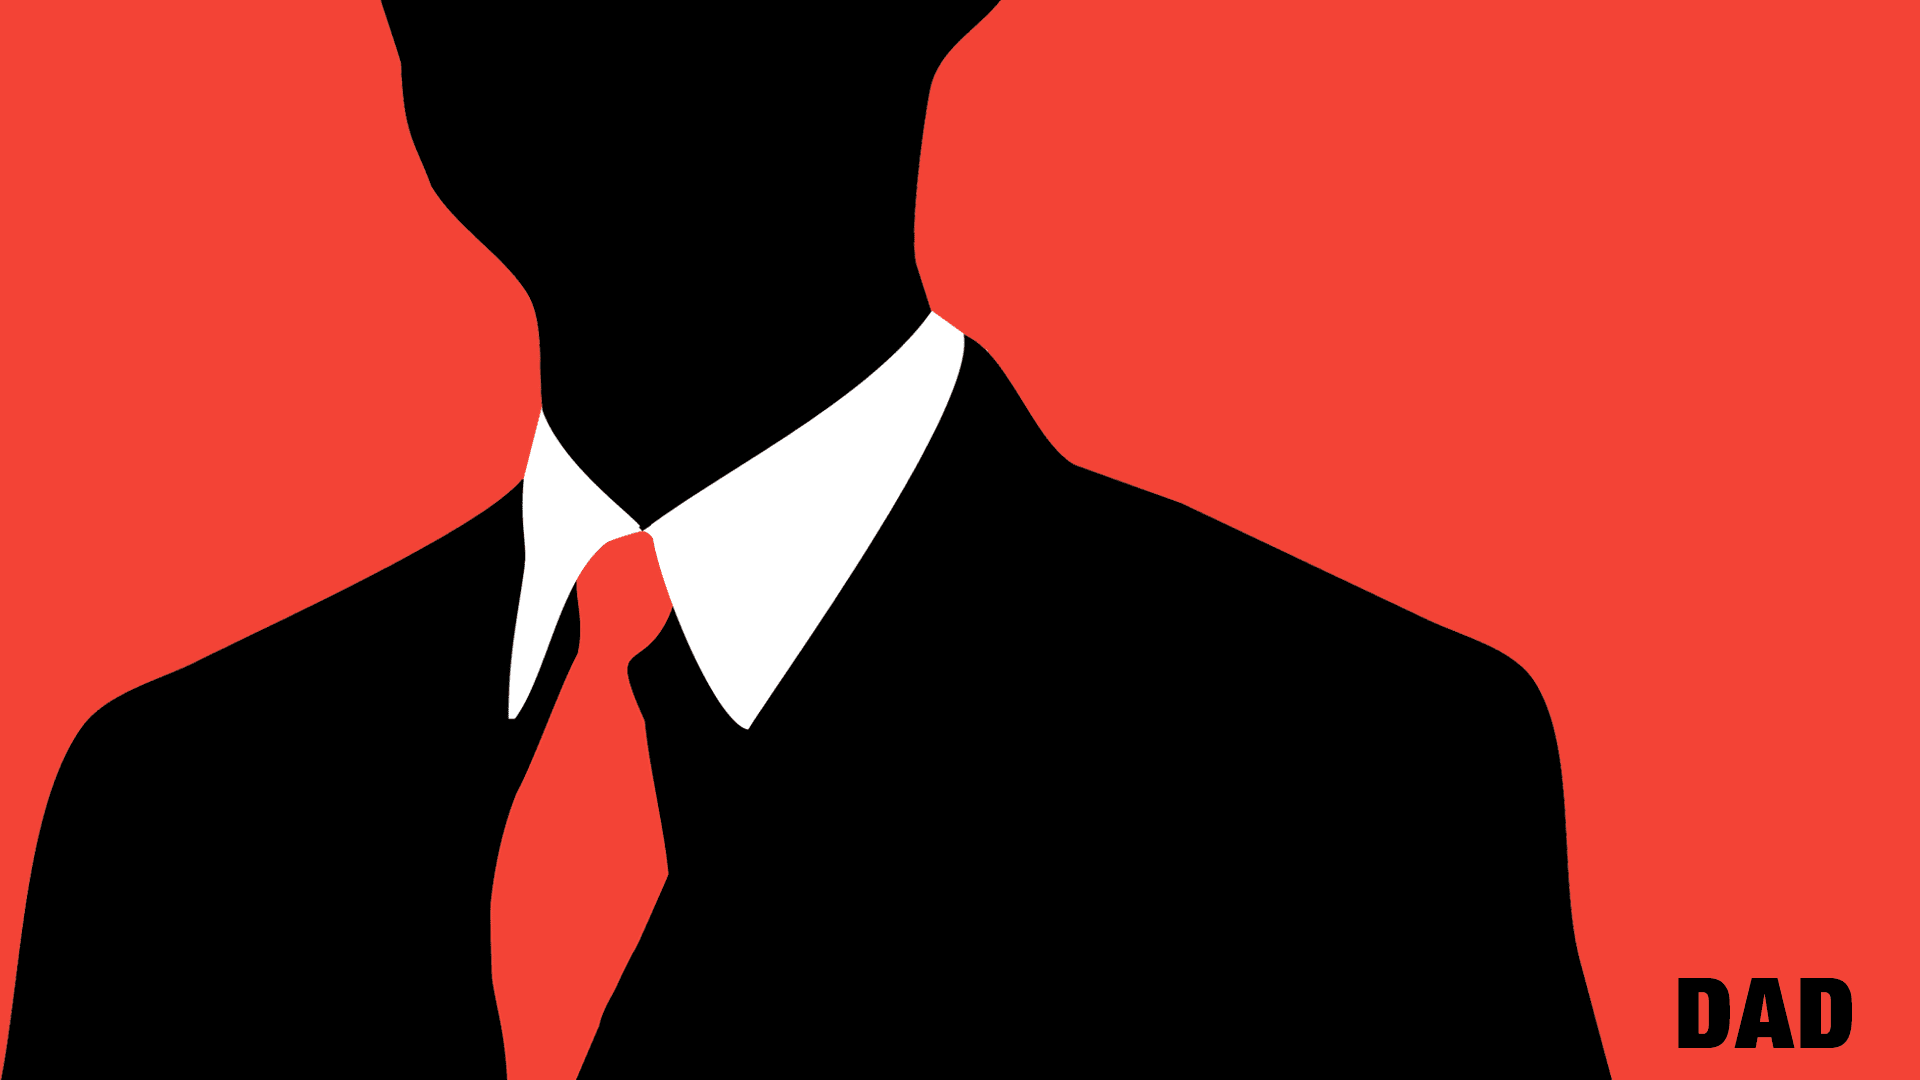 A businessman over a red background.